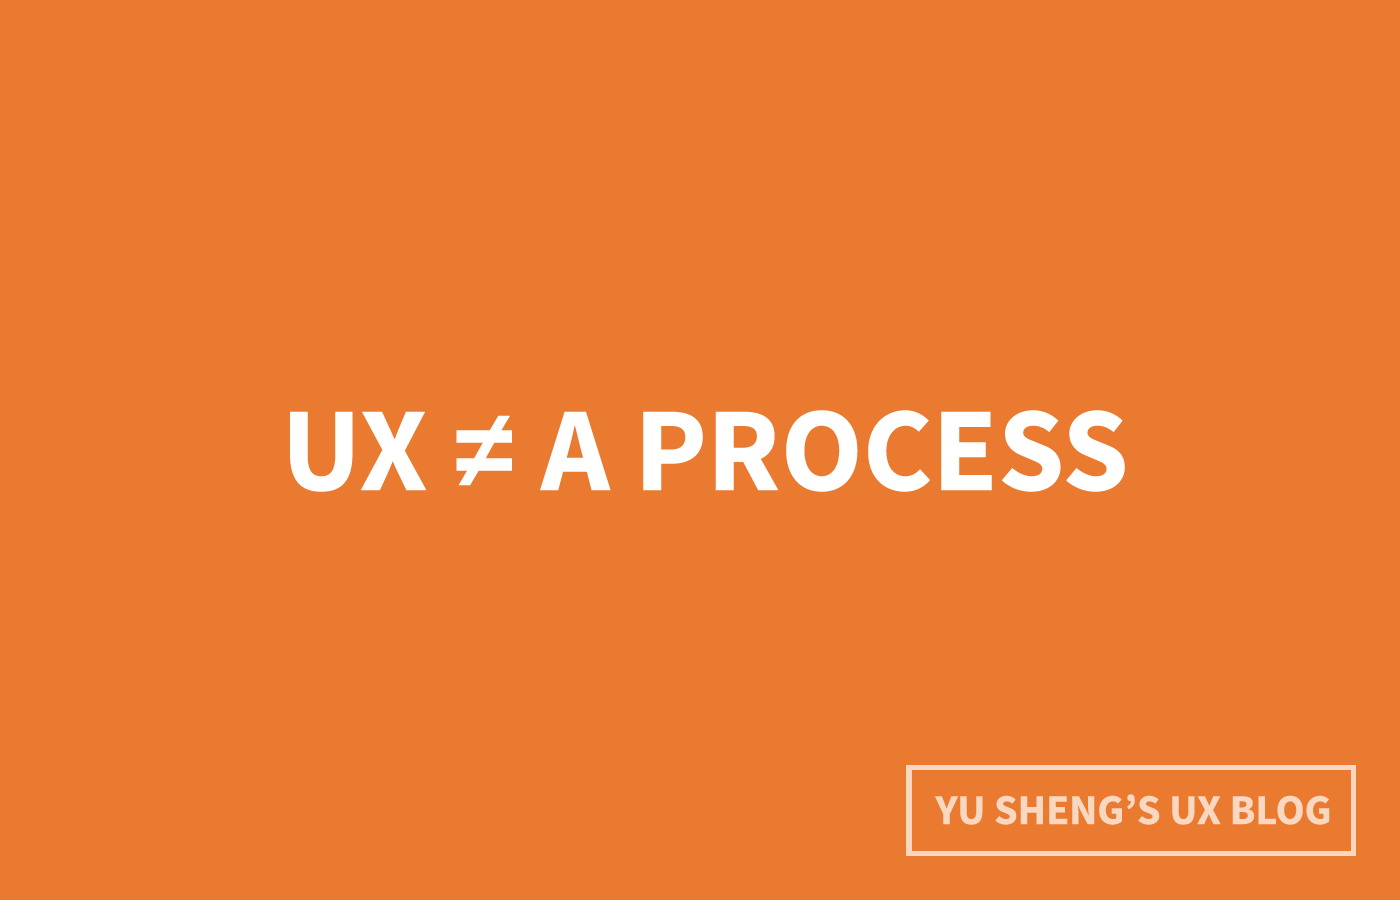 ux-is-not-a-process-FI